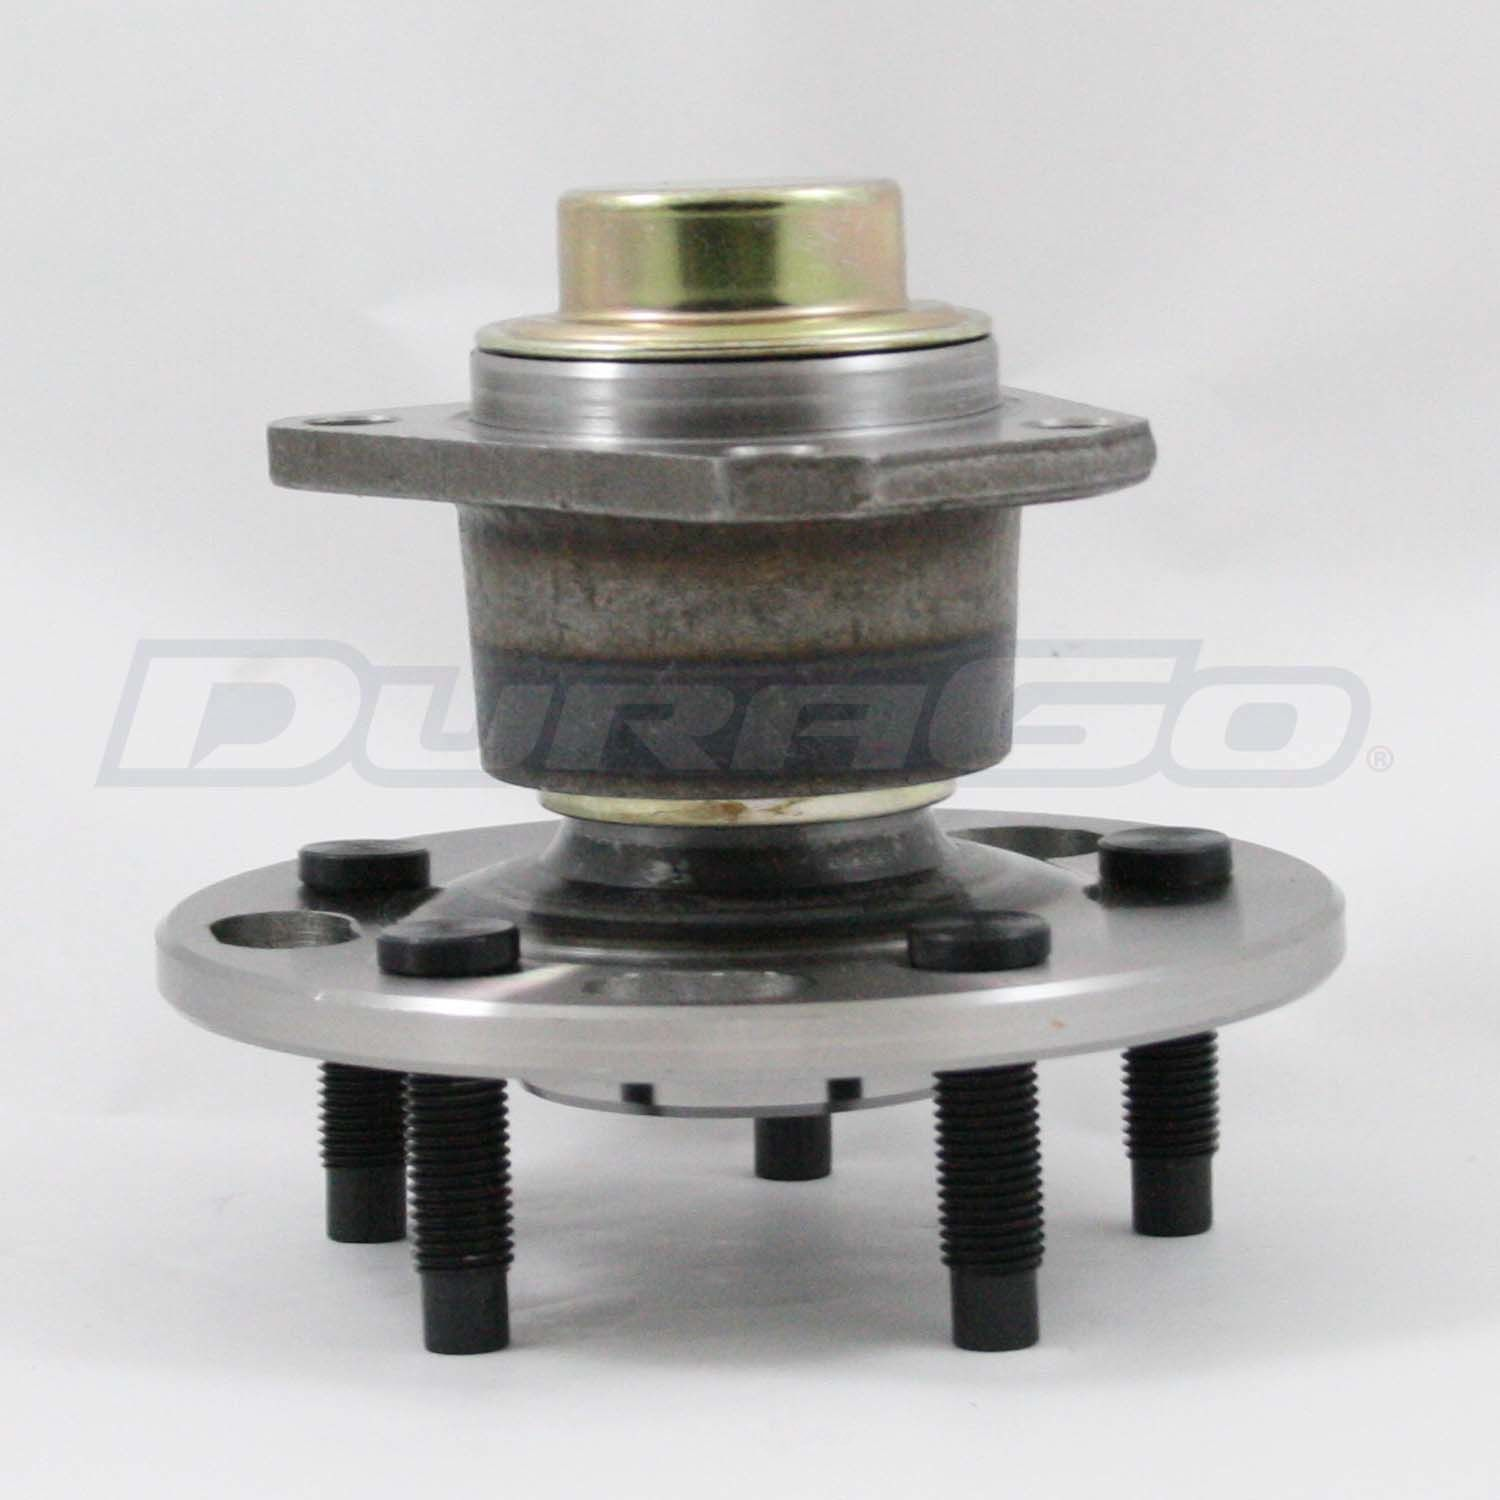 DURAGO - Axle Bearing and Hub Assembly - D48 295-13012